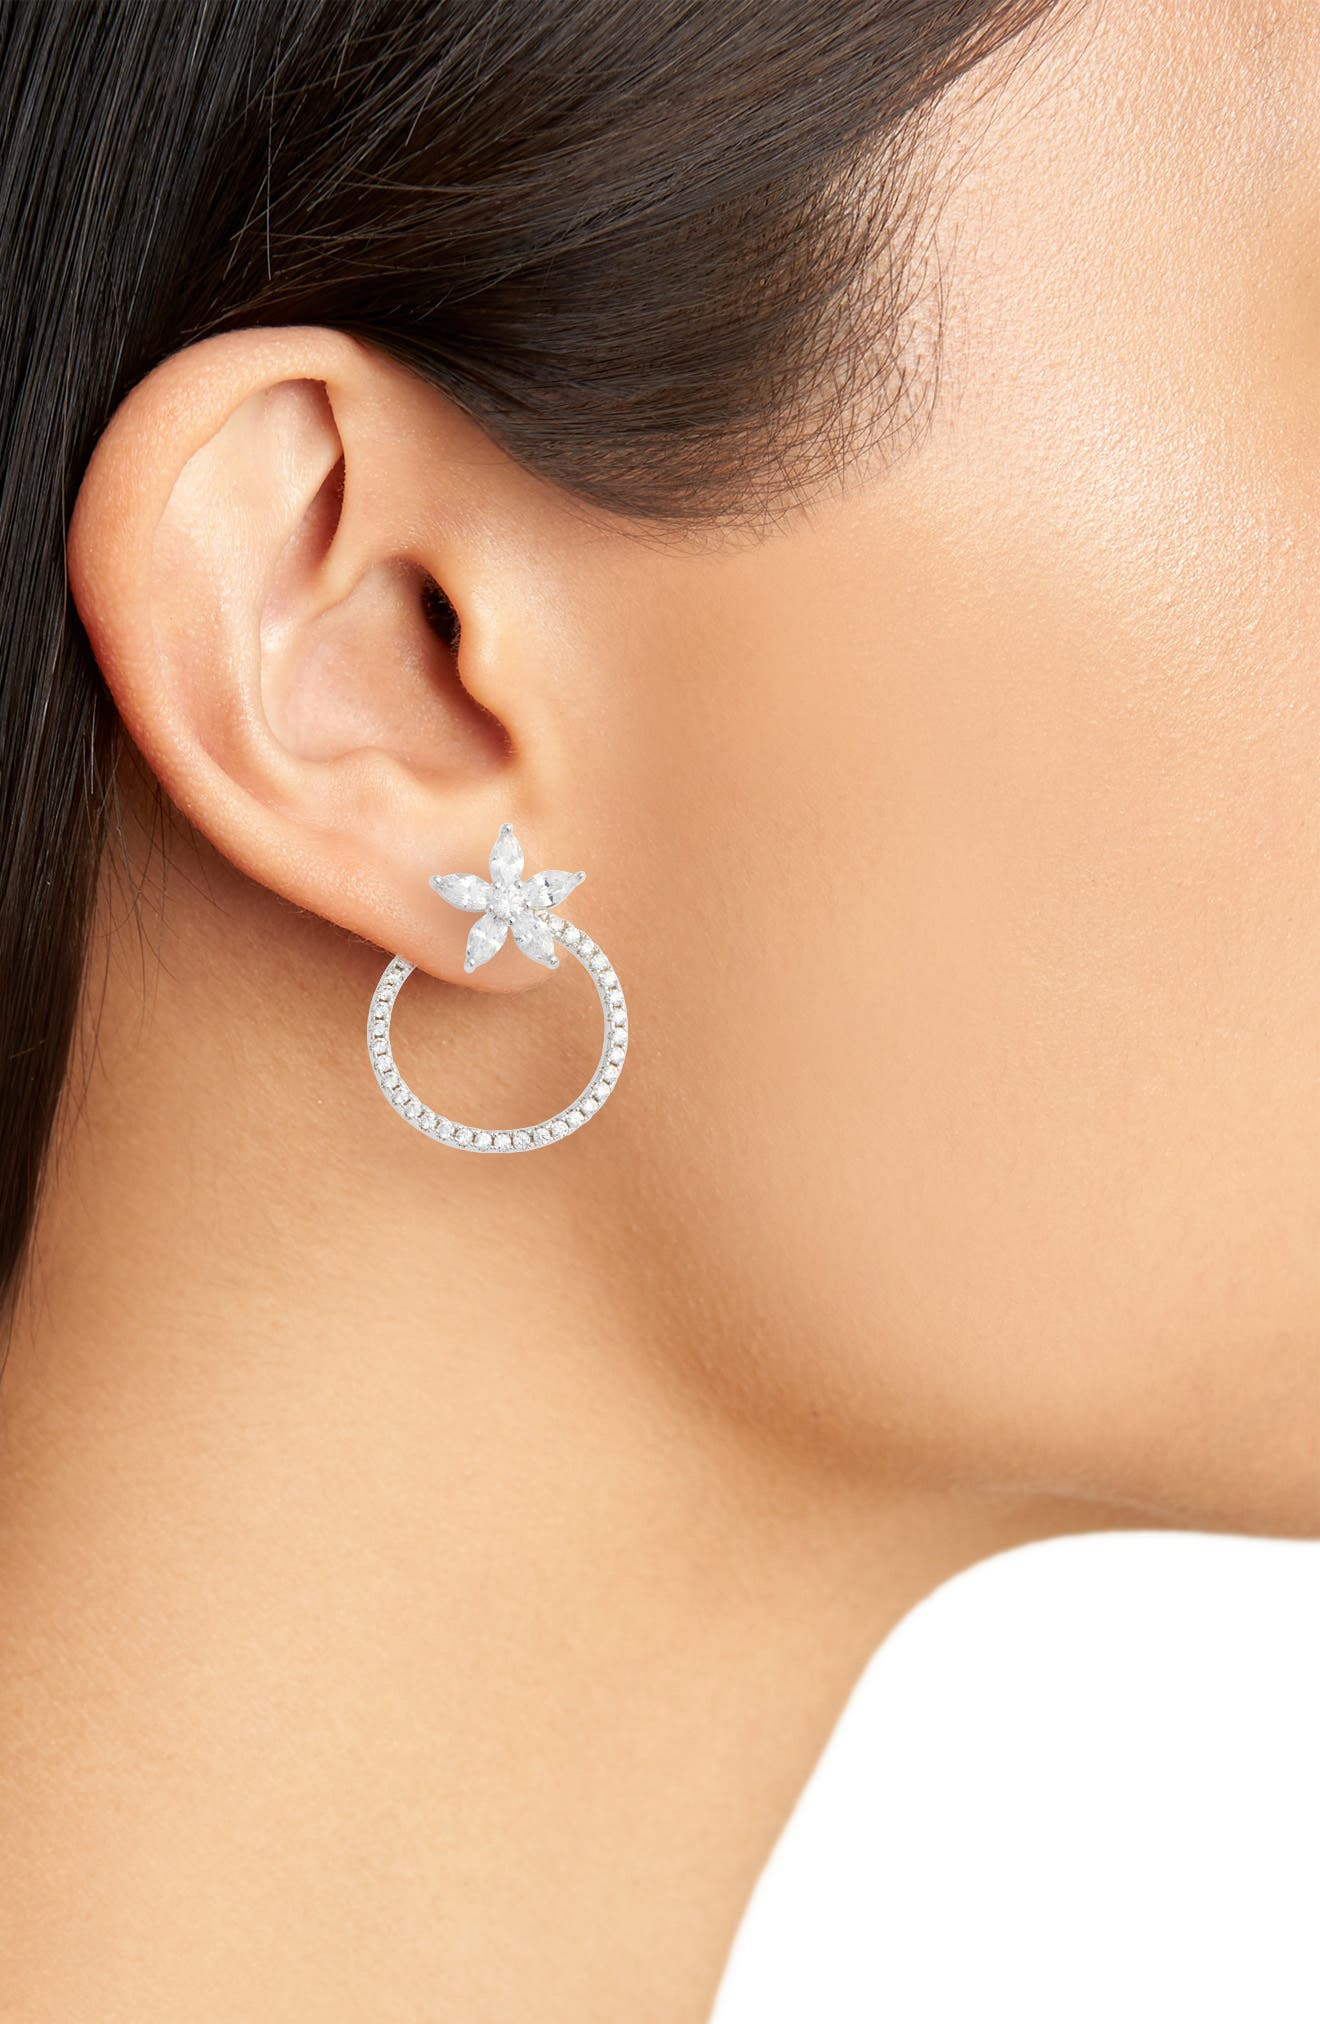 Front to Back Floral Hoop Earrings,                             Alternate thumbnail 2, color,                             Silver/ White Cz